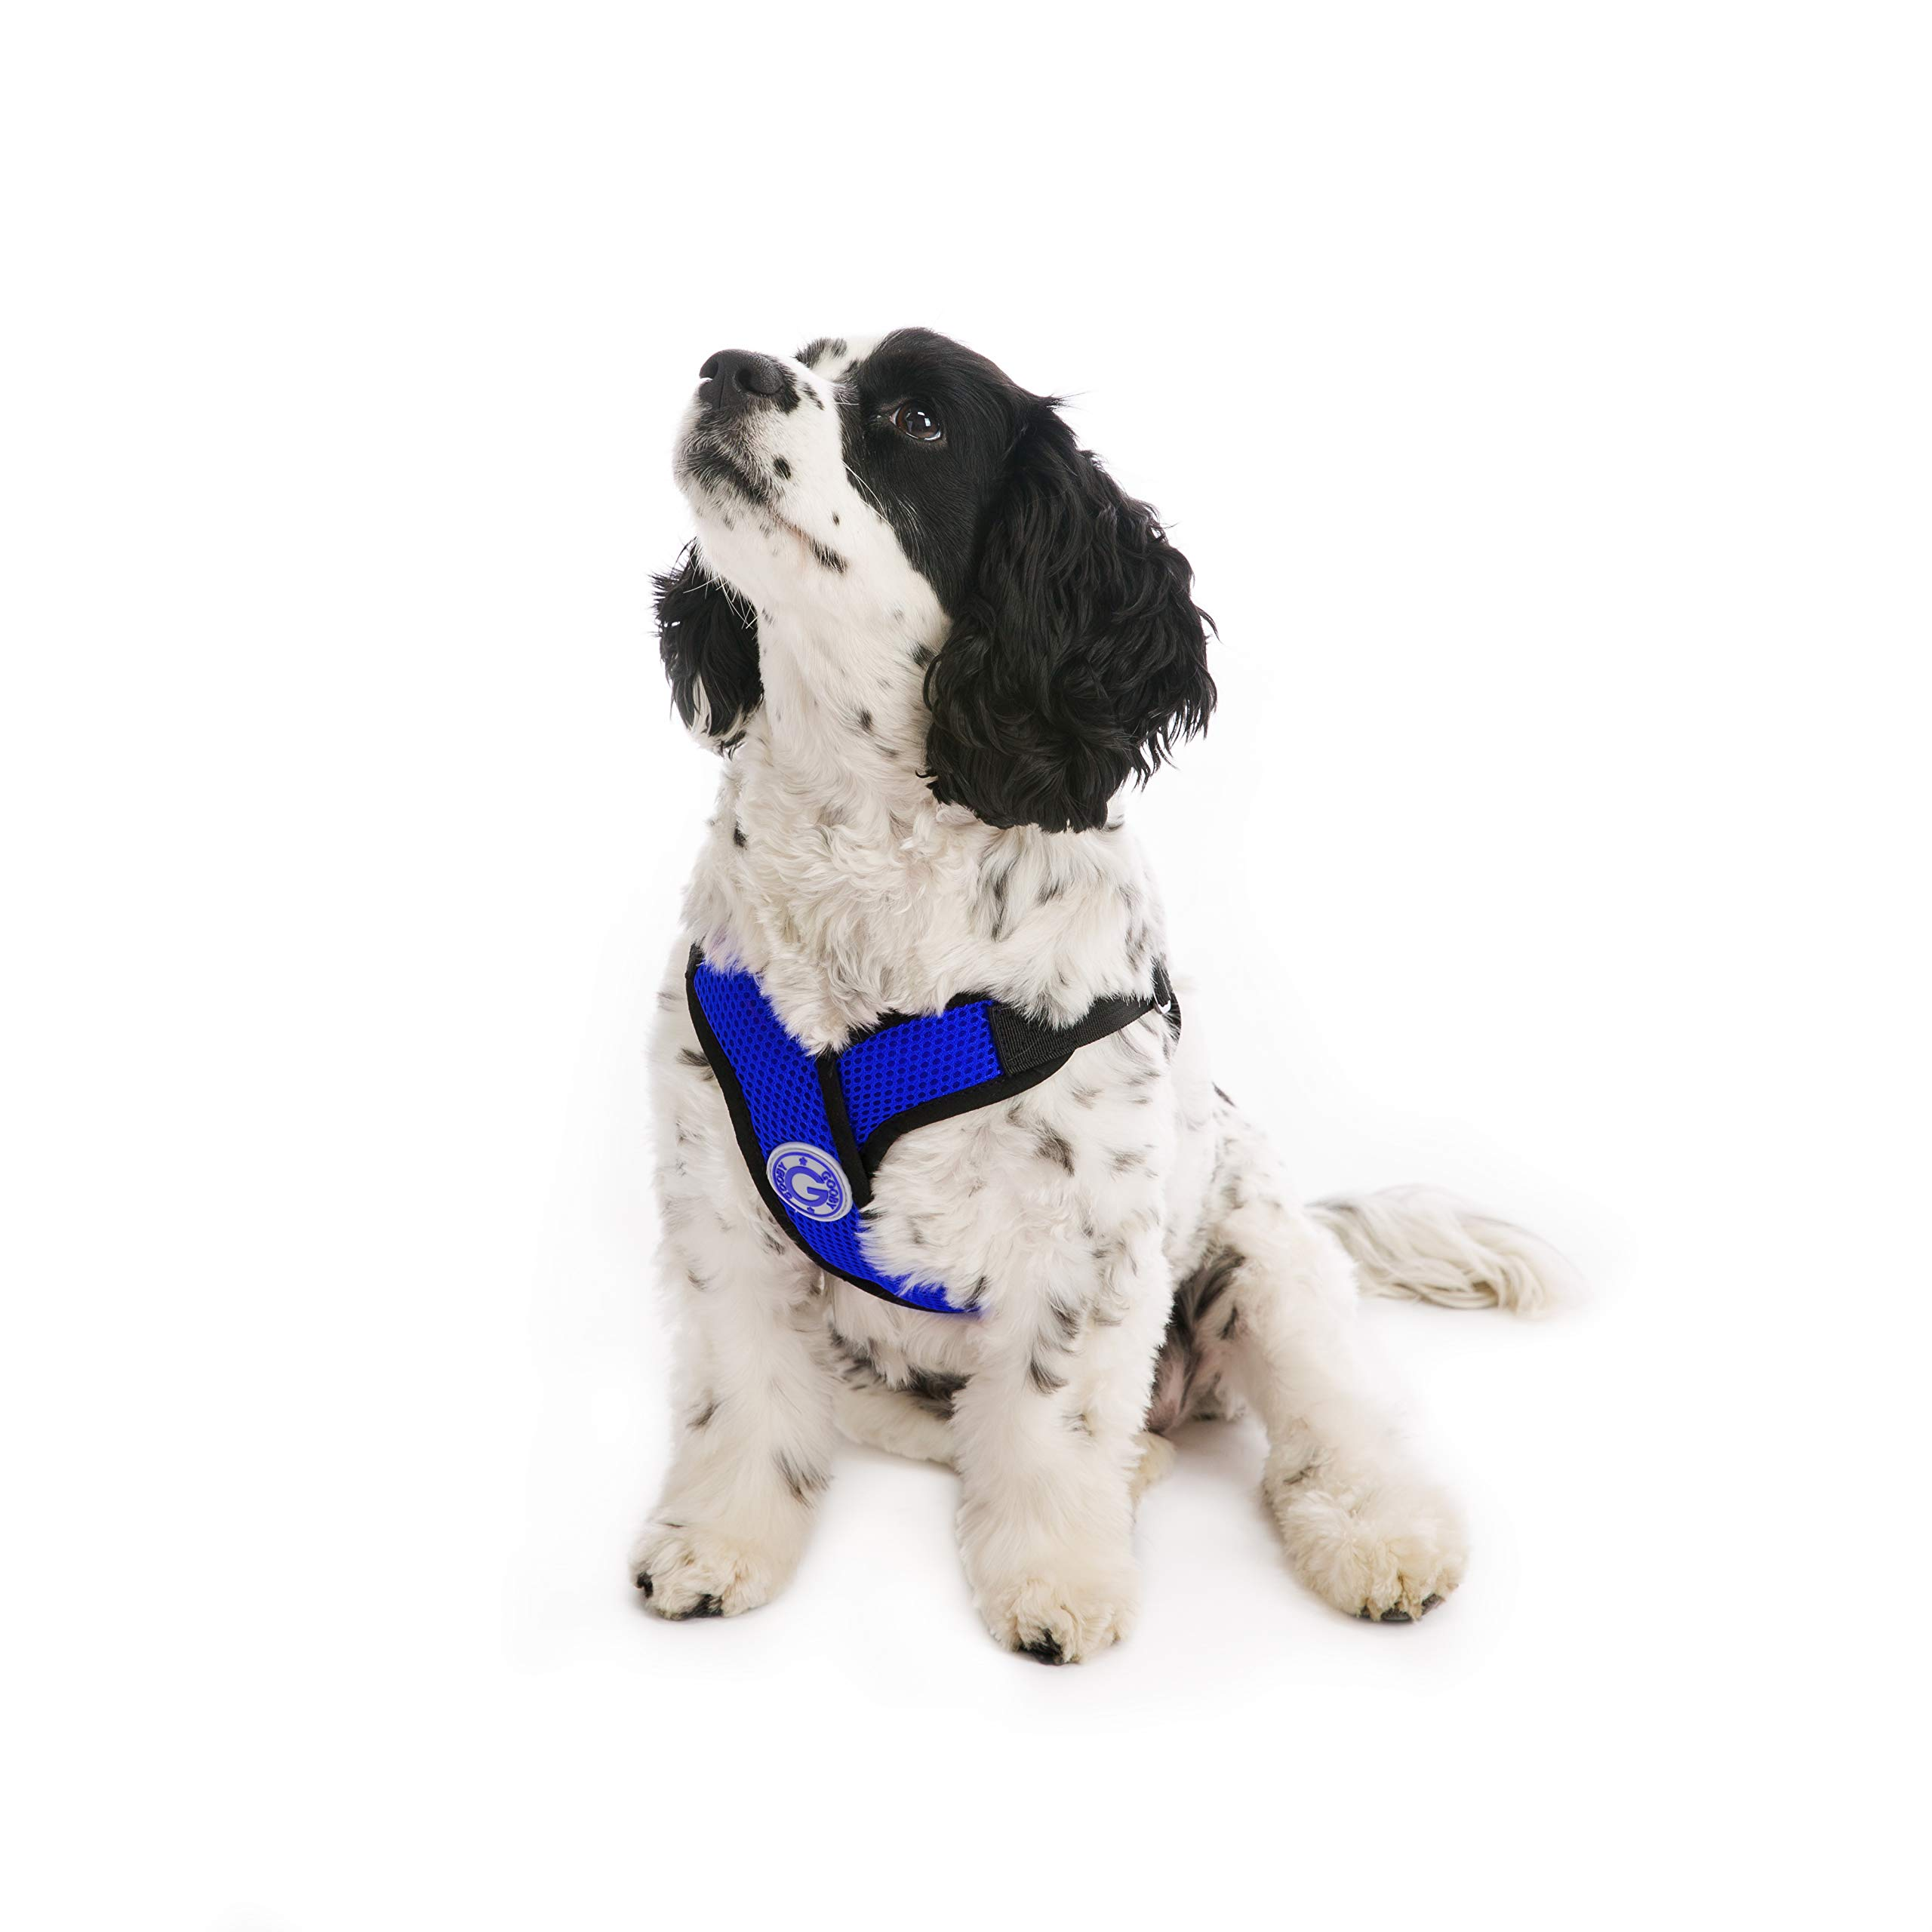 Gooby - Comfort X Step-in Harness, Choke Free Small Dog Harness with Micro Suede Trimming and Patented X Frame, Blue, X-Large by Gooby